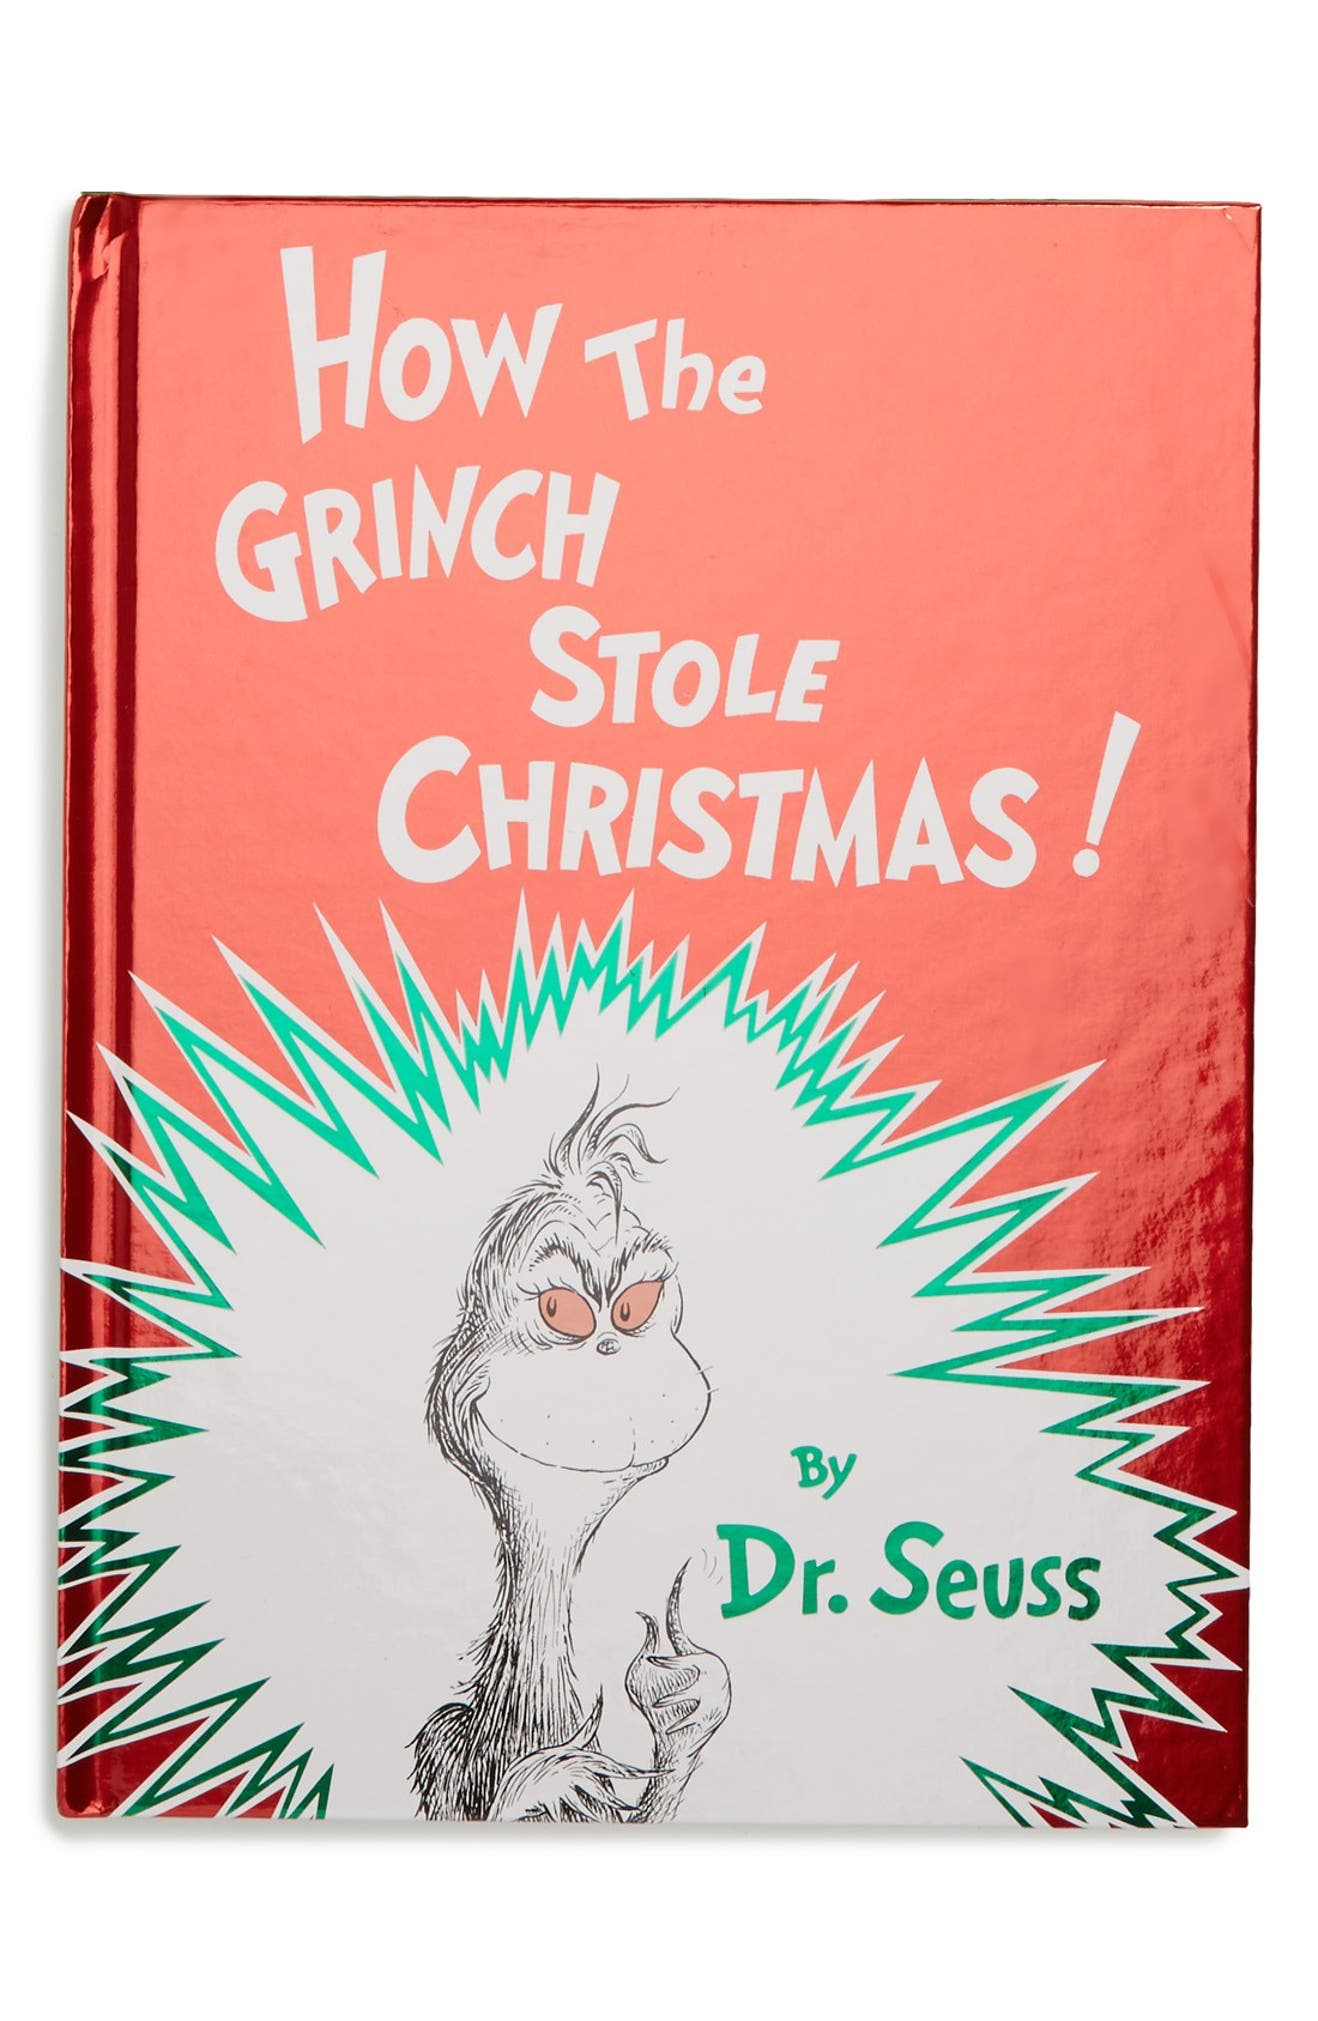 How The Grinch Stole Christmas Book Cover.How The Grinch Stole Christmas Book Nordstrom